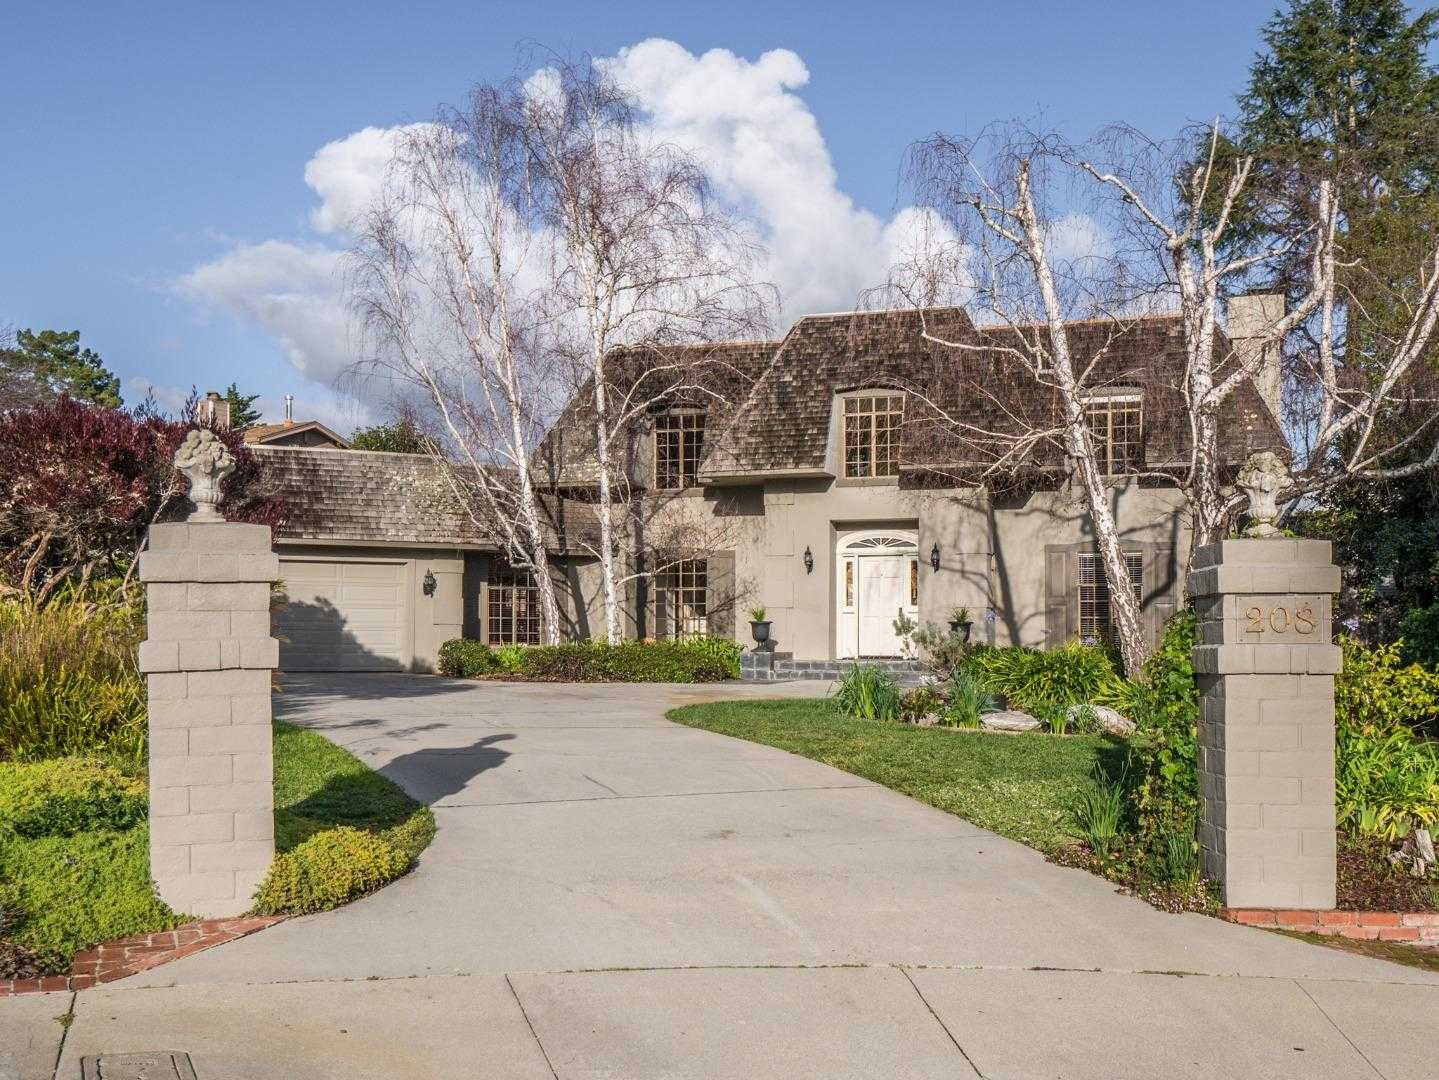 $1,509,000 - 3Br/3Ba -  for Sale in Santa Cruz